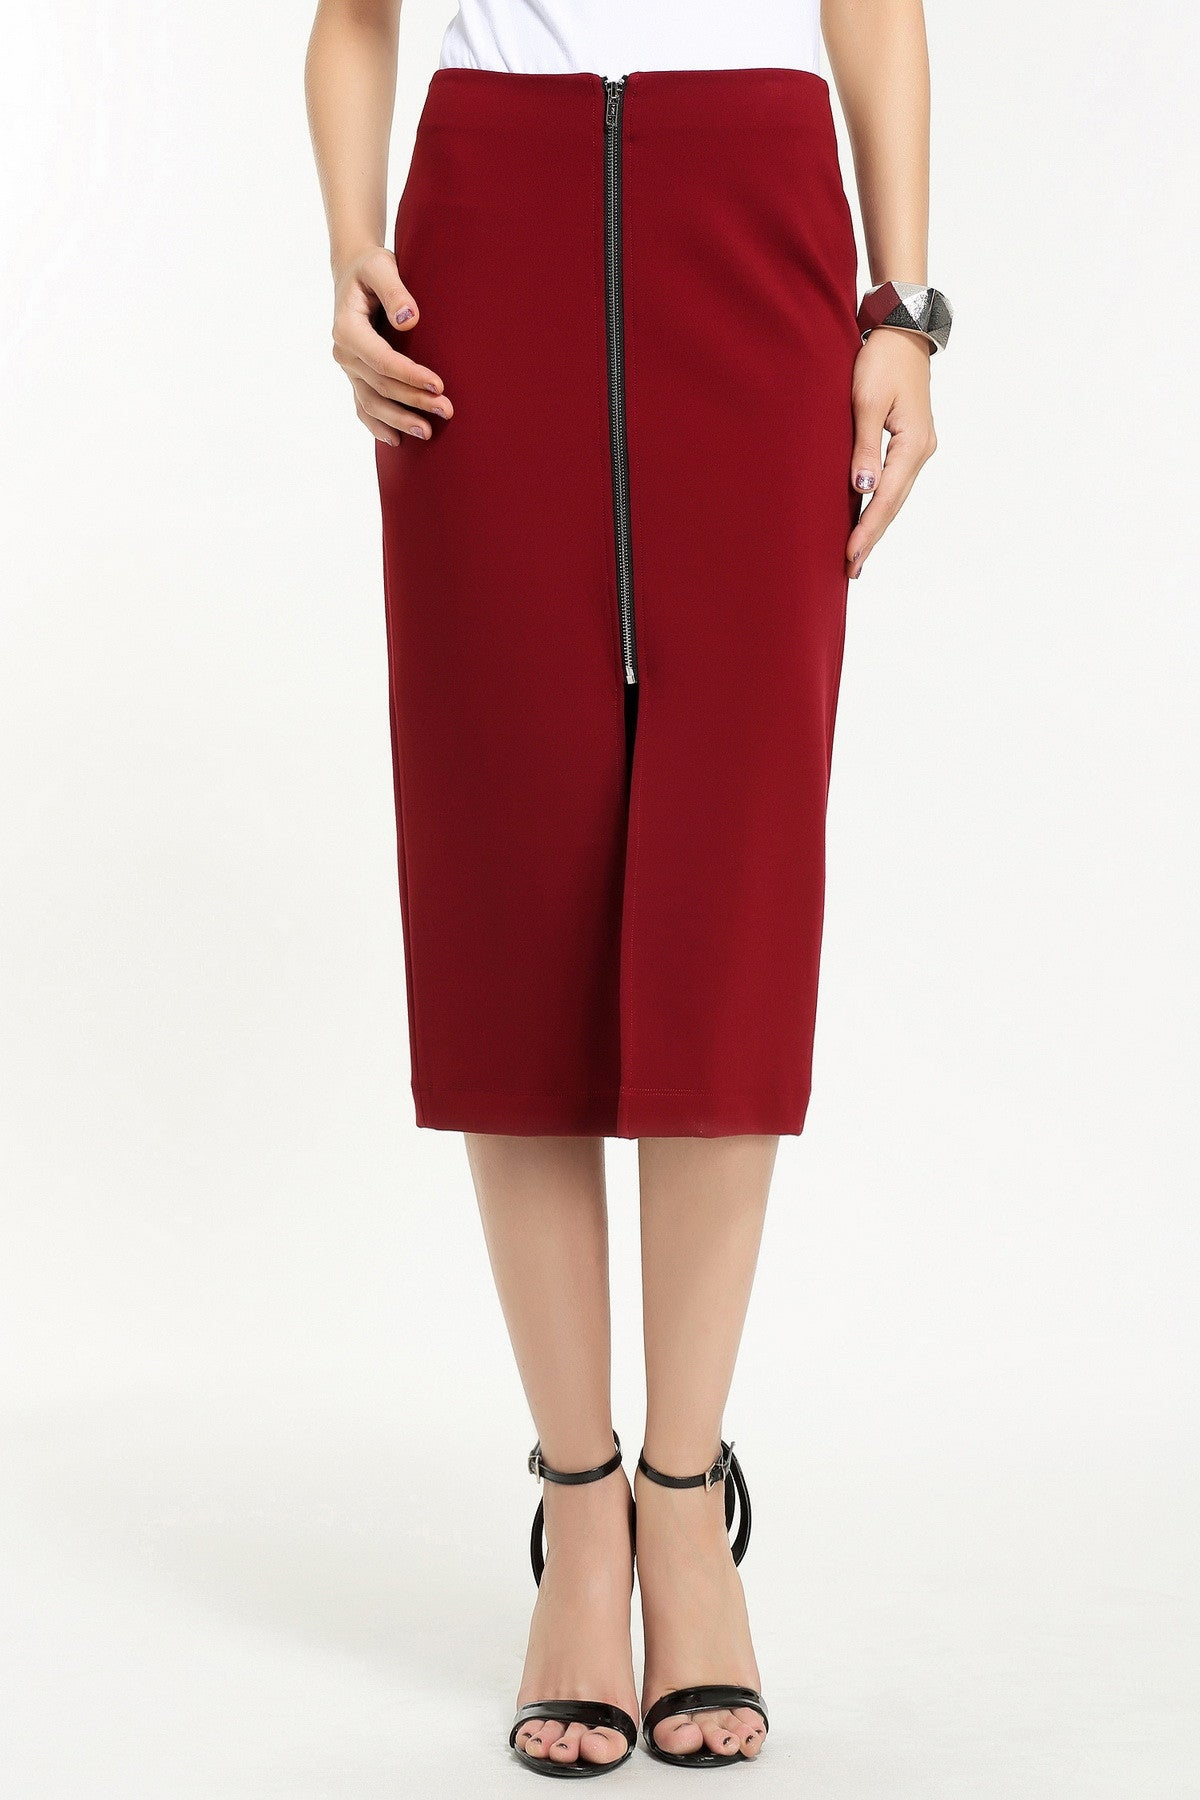 FRONT ZIP PENCIL SKIRT 1606120 RED WINE